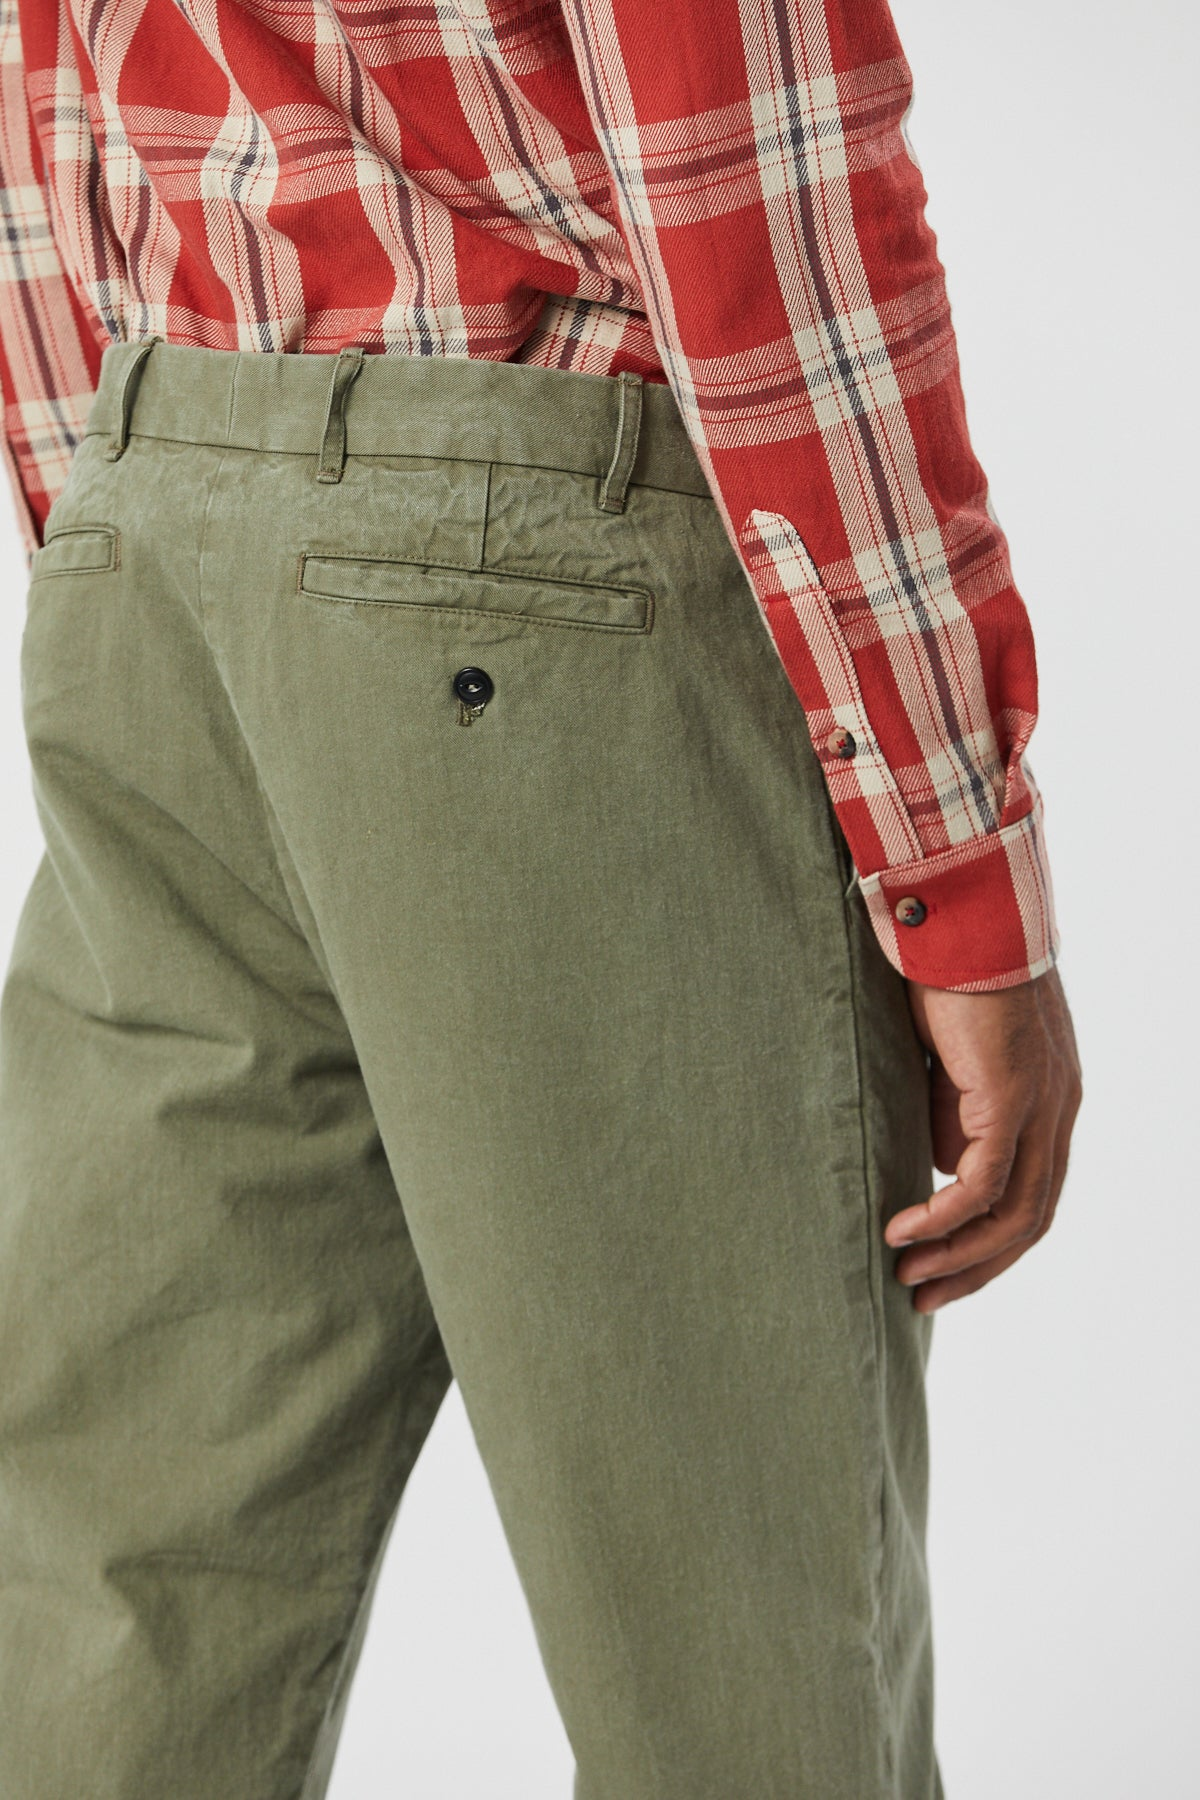 BRIGGS TROUSER IN SAGE - Fortune Goods